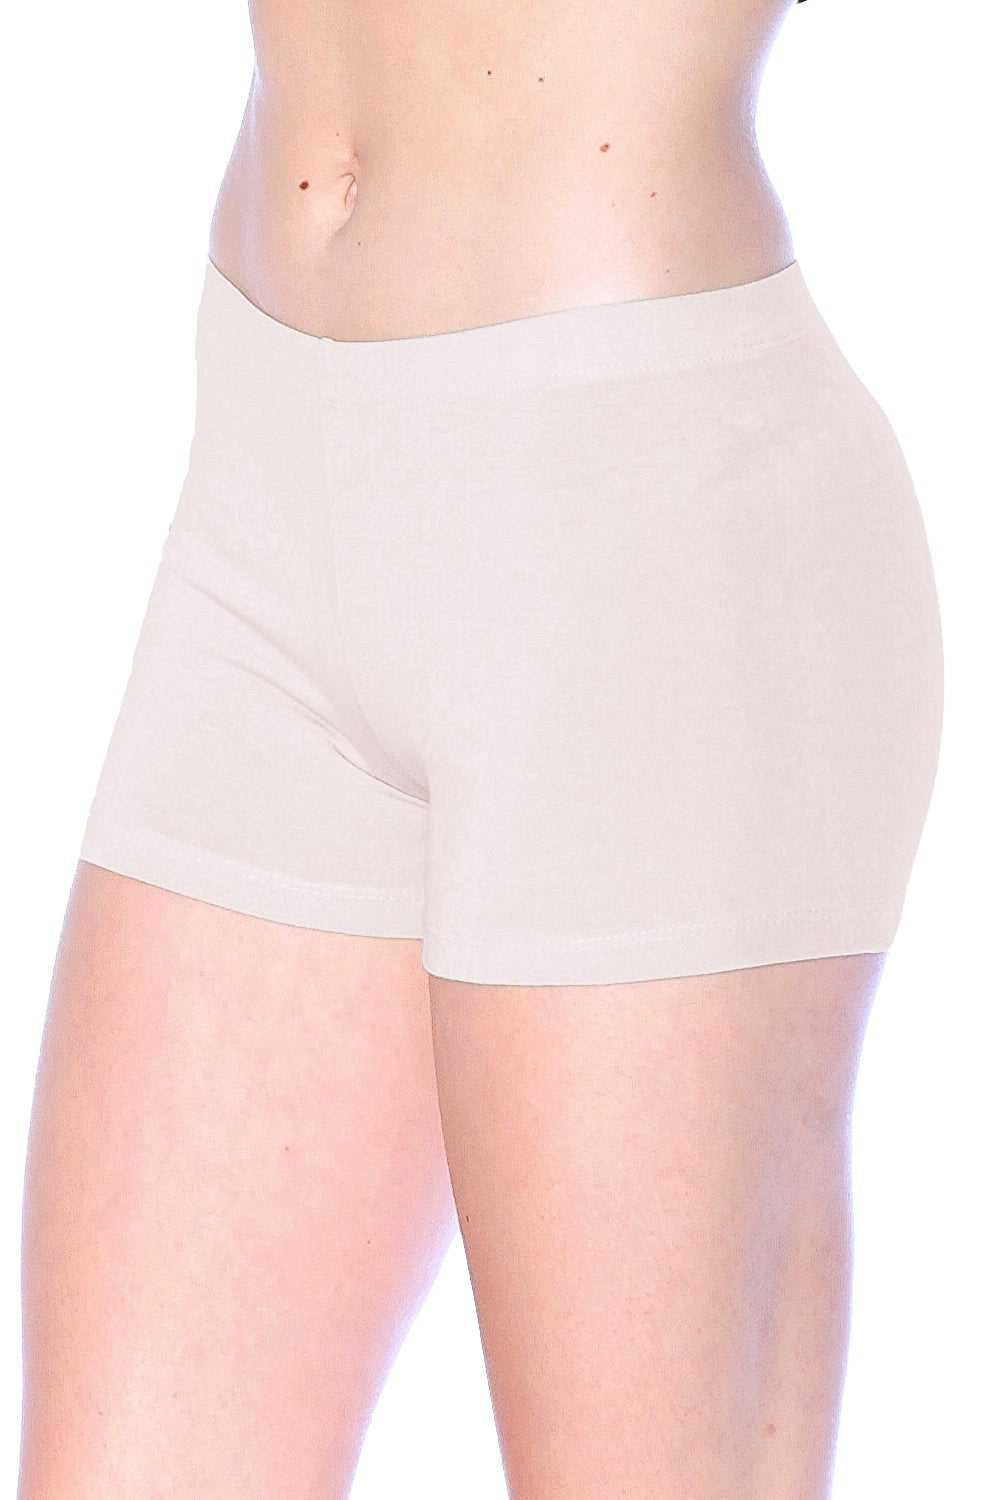 Cotton Blend Elastic Waist Band Legging Shorts (Large, Beige )